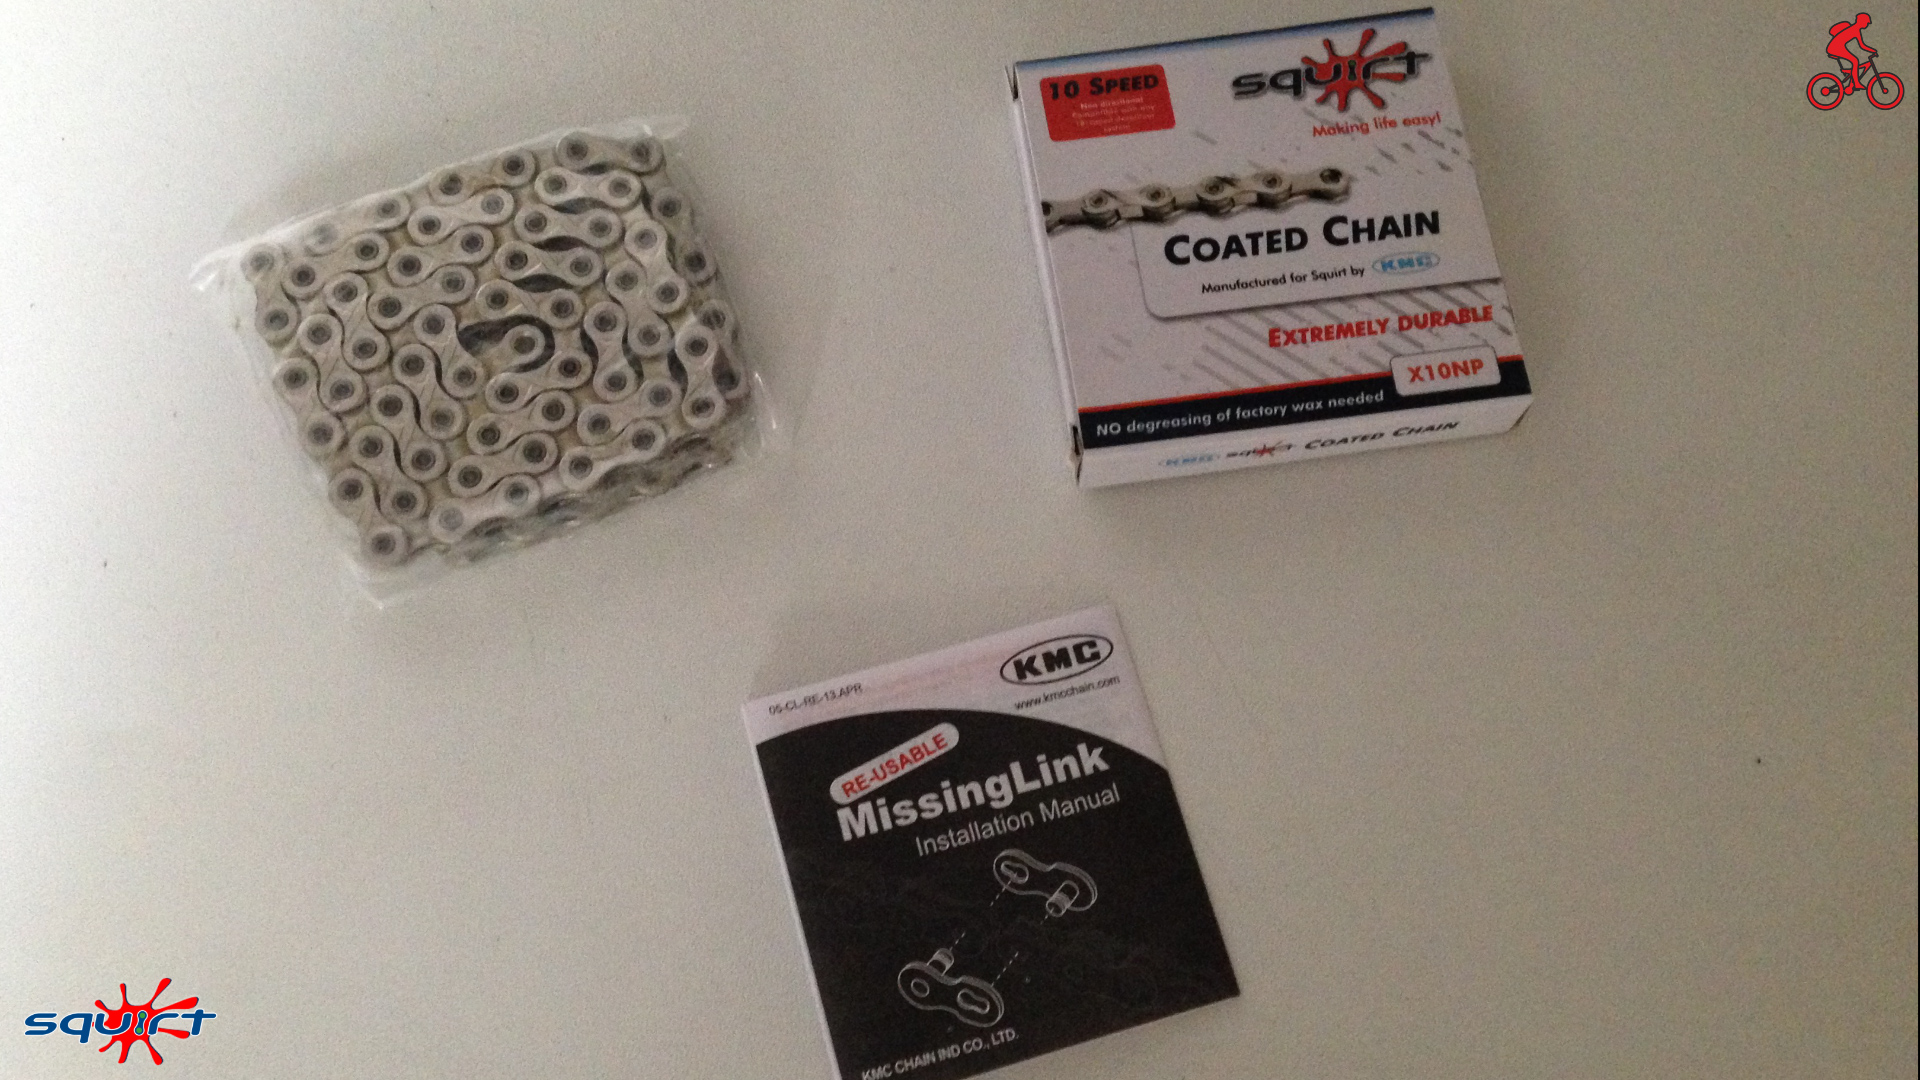 Squirt Coated Chain (2)